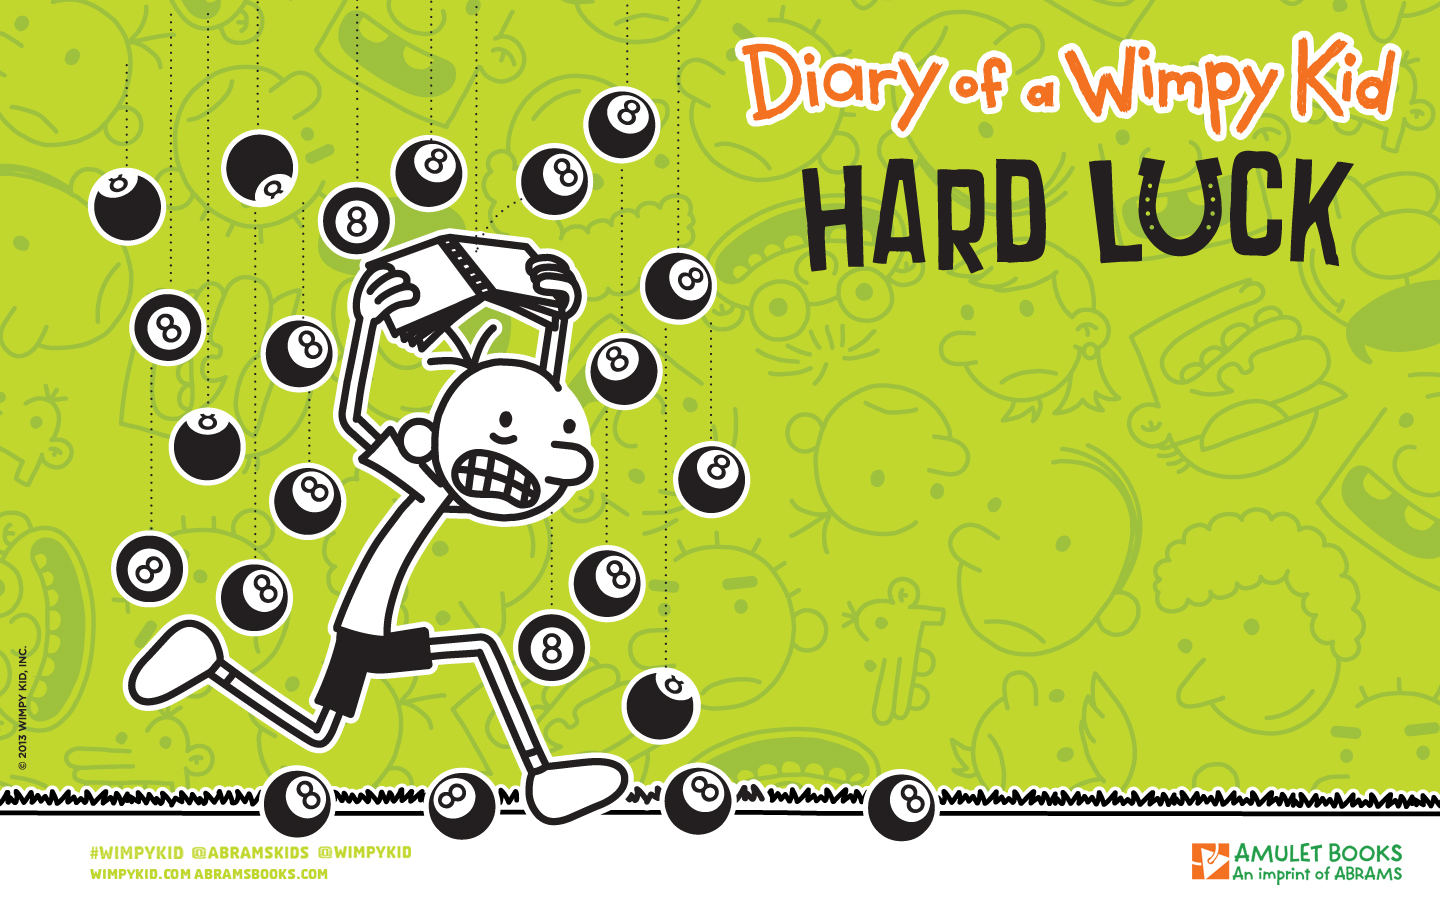 diary of a wimpy kid parent review